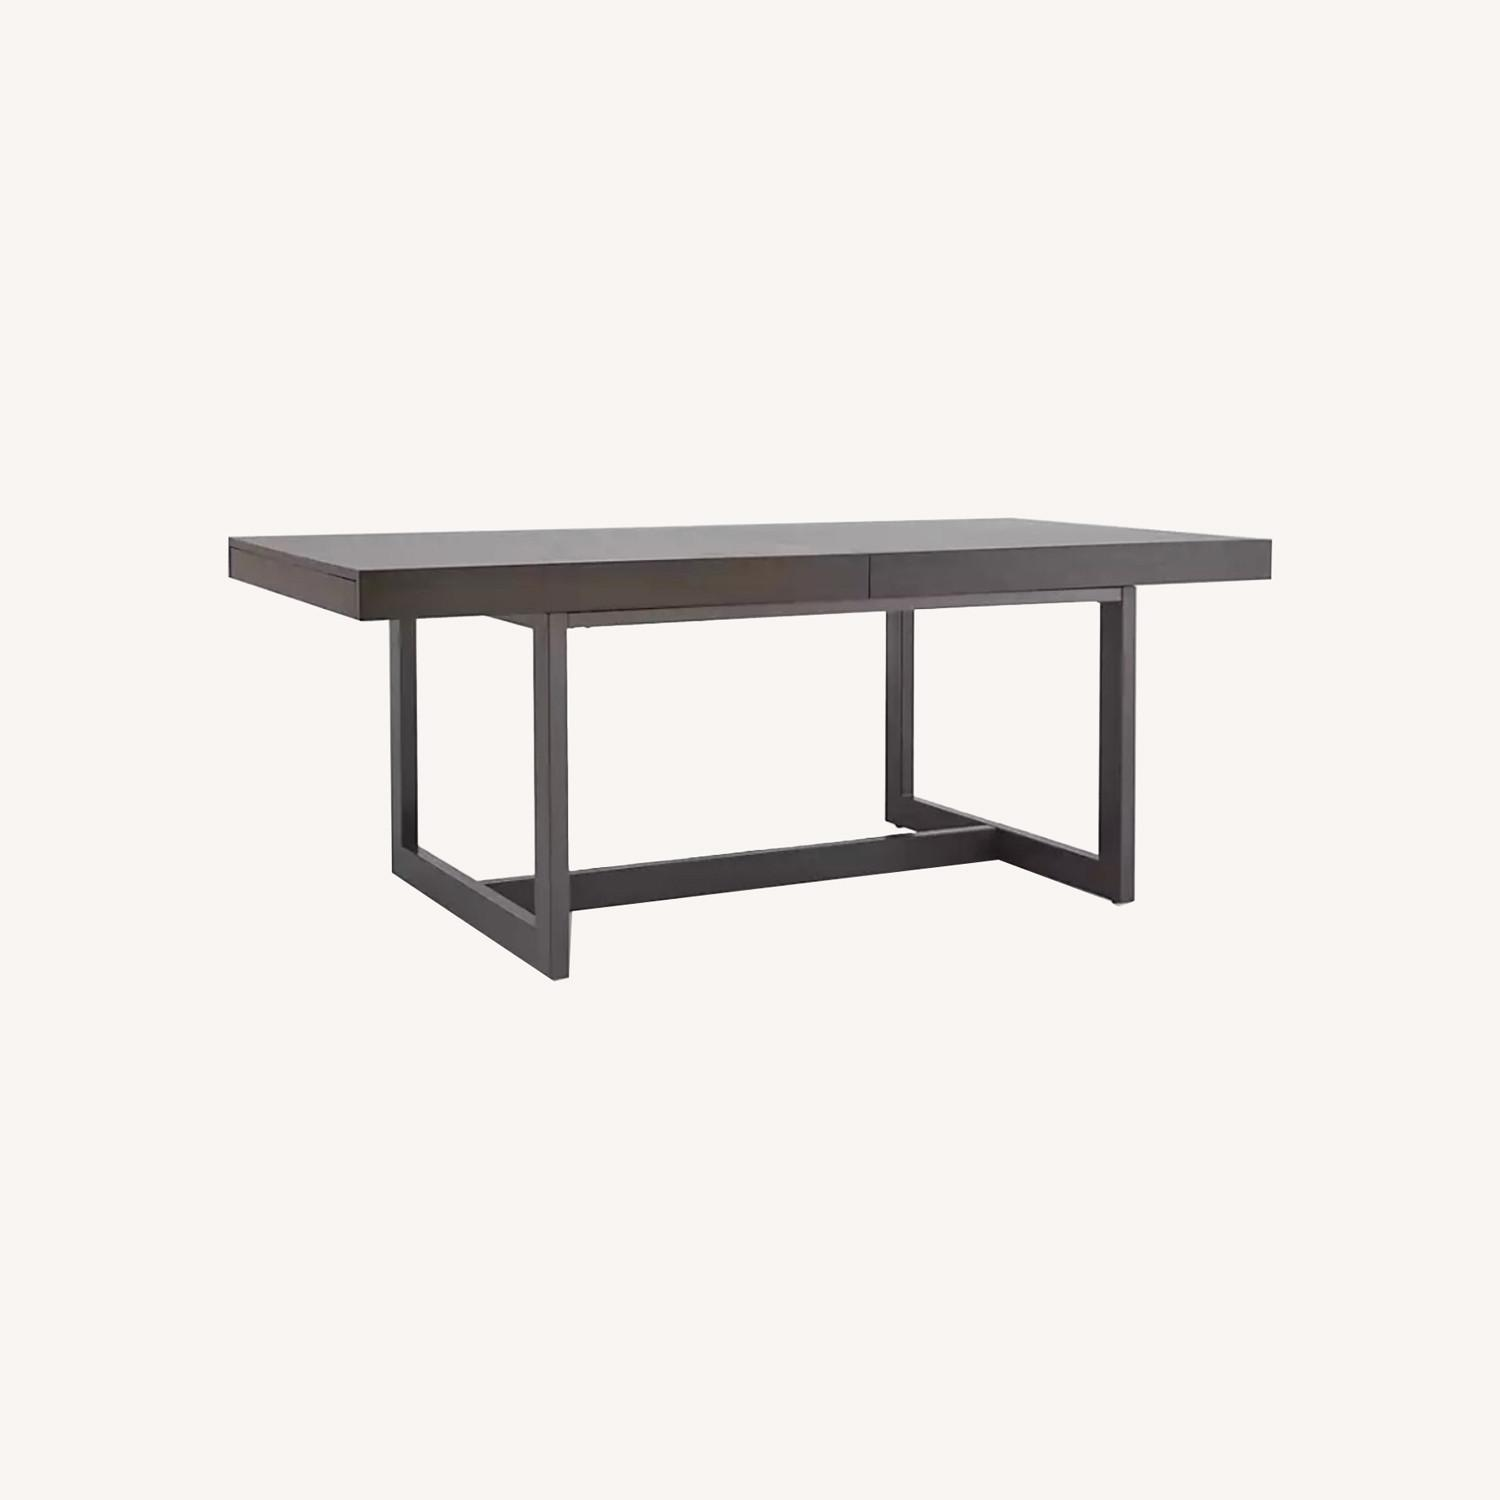 Crate & Barrel Extending Dining Table - image-5